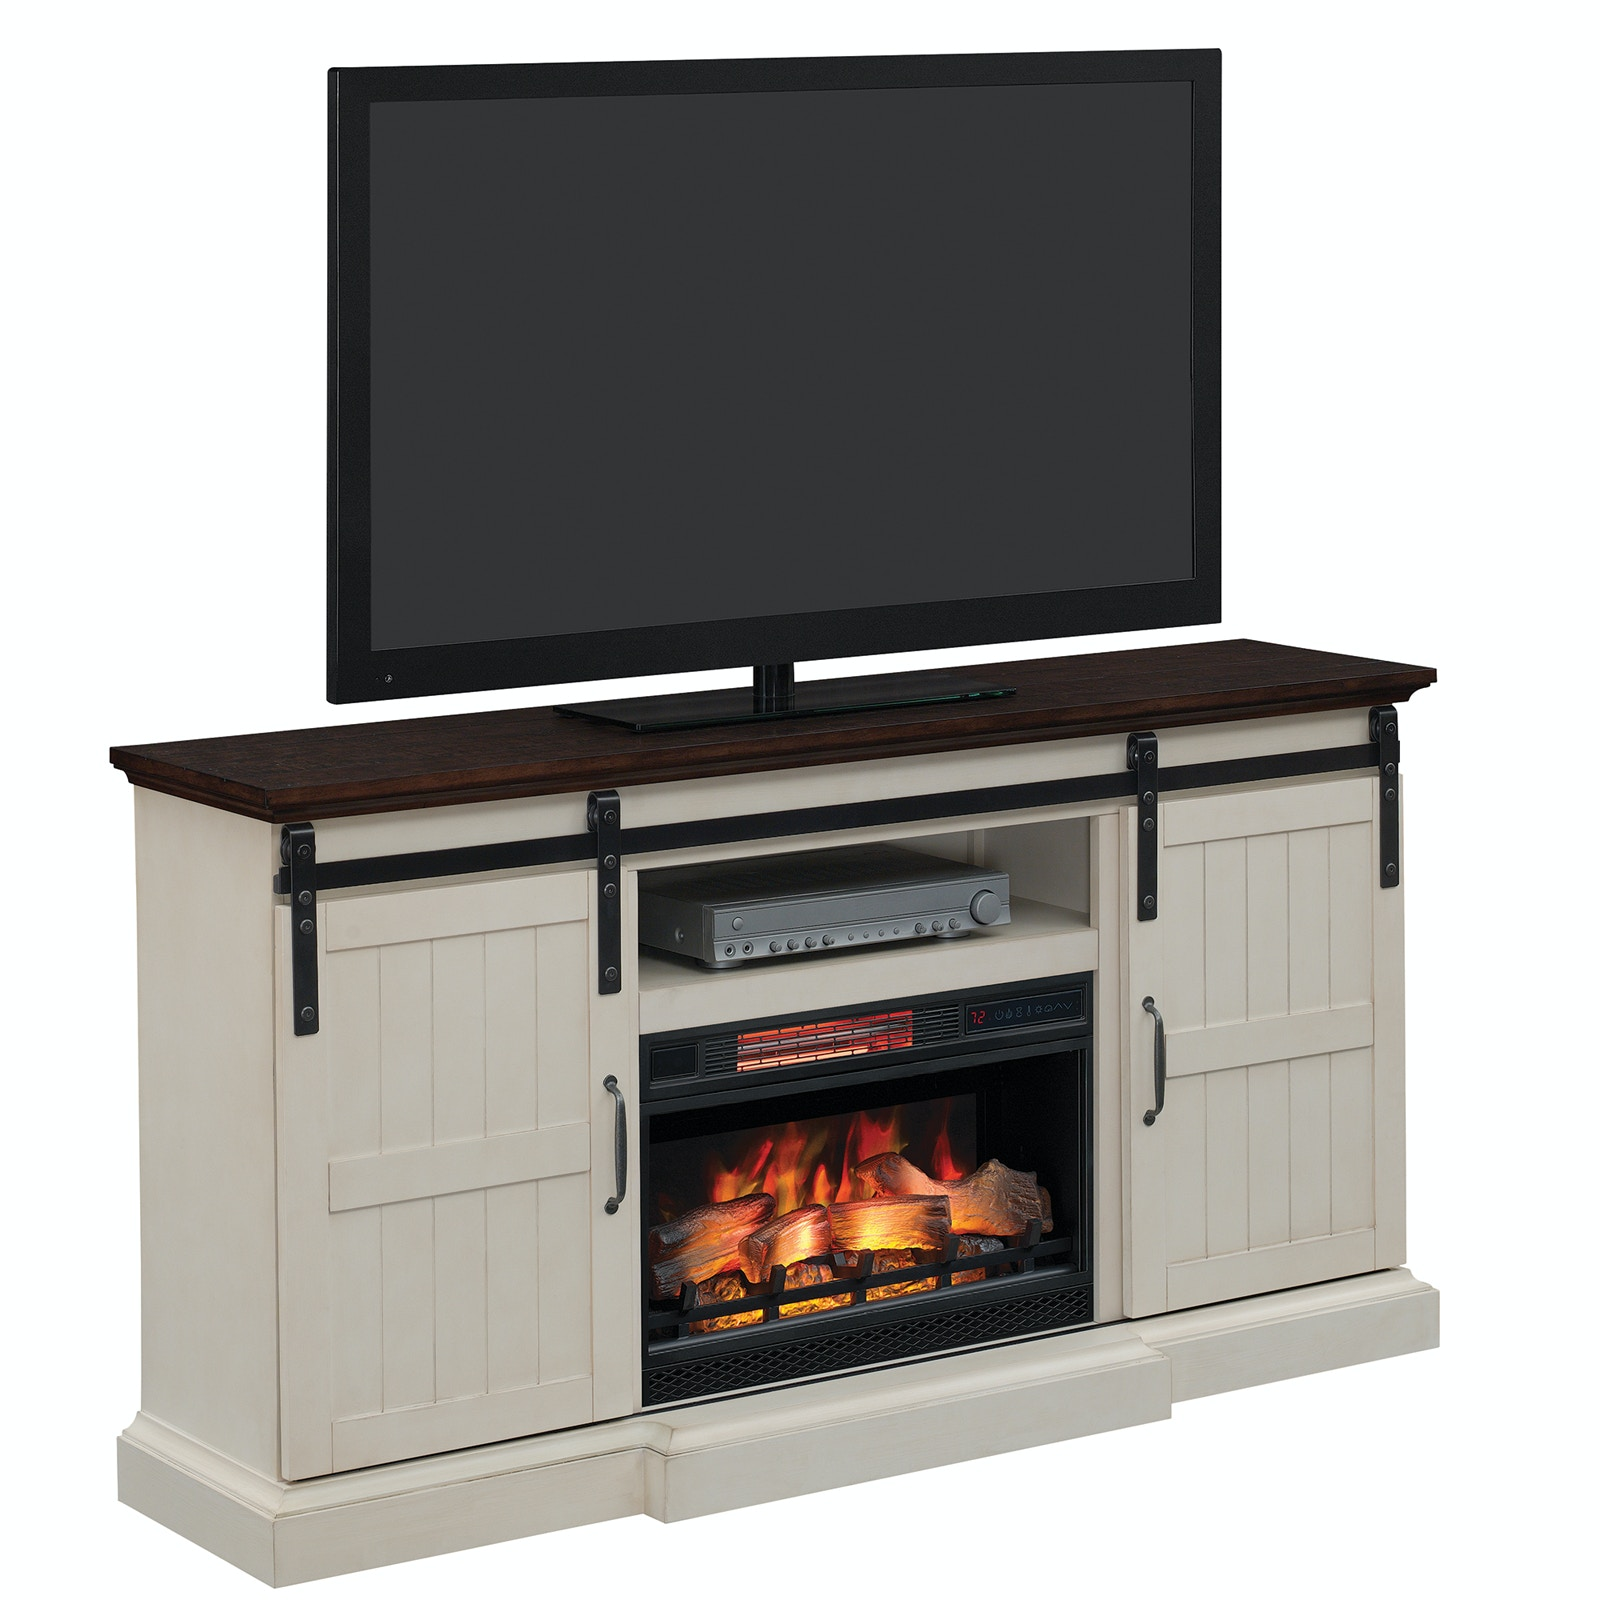 Twin Star International Accessories Weathered White Tv Stand With Fireplace Insert 618845